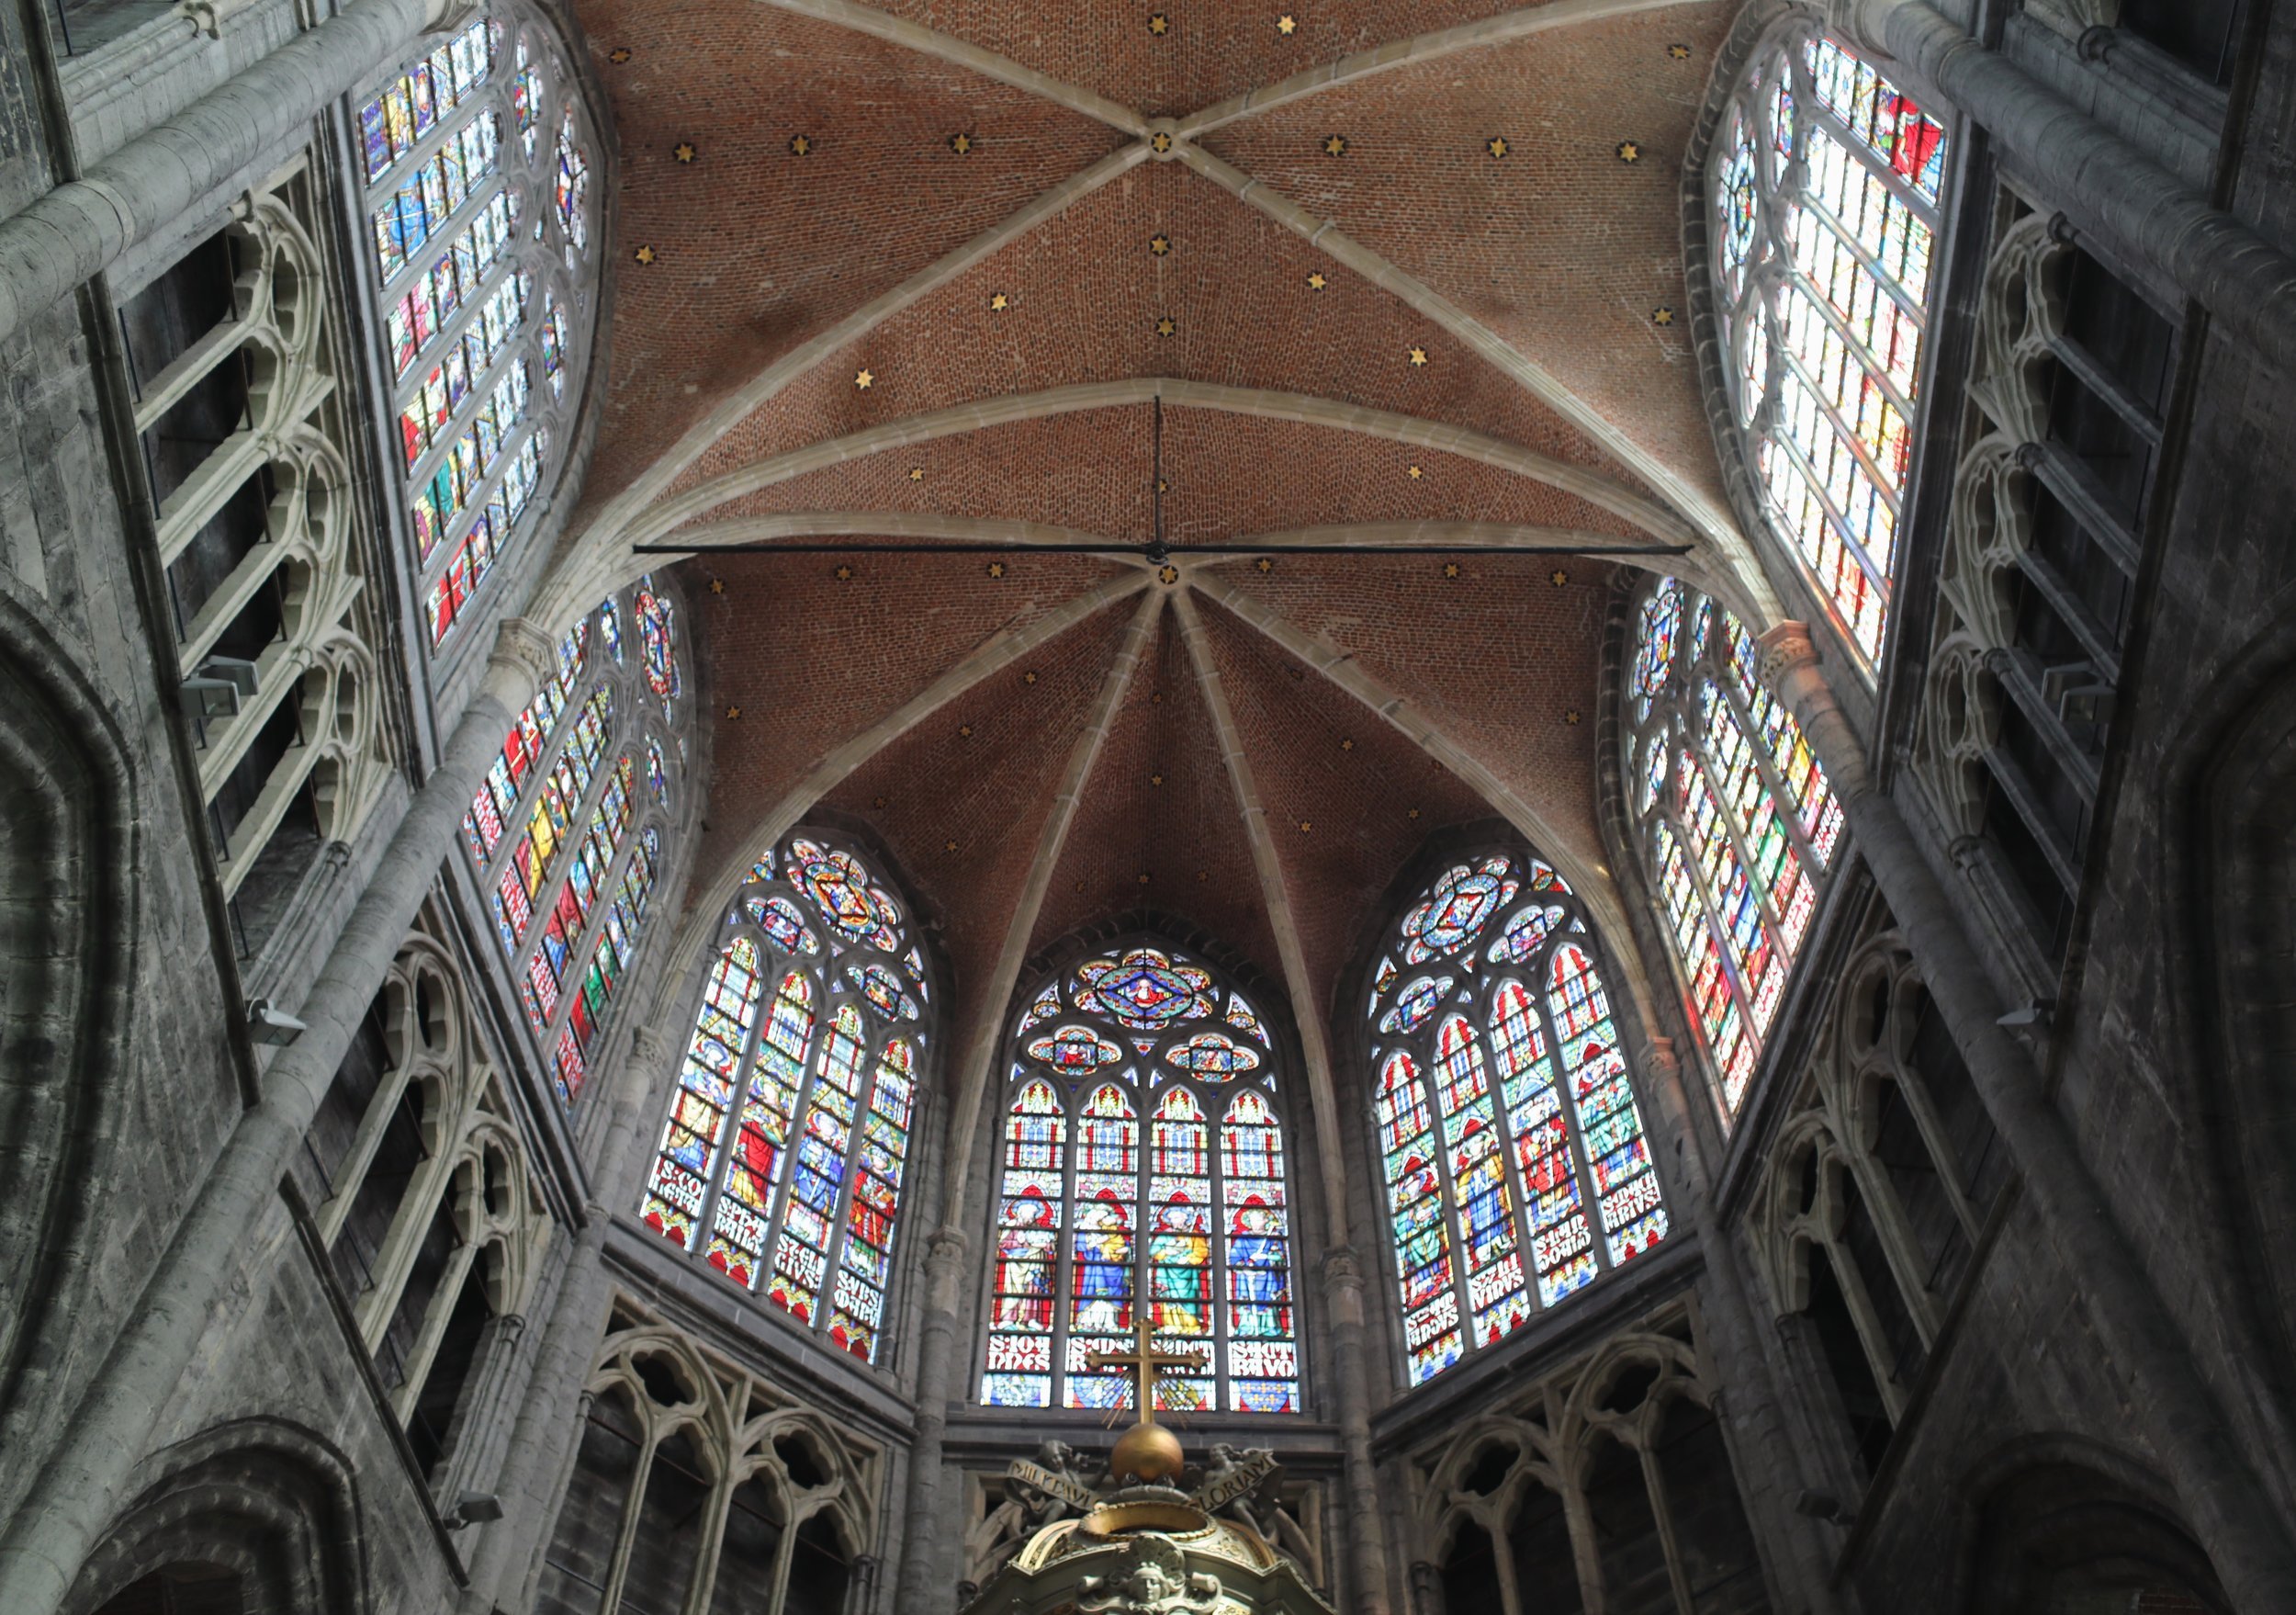 Sint-Baafs Cathedral, Ghent, Belgium    Canon 5d Mark IV